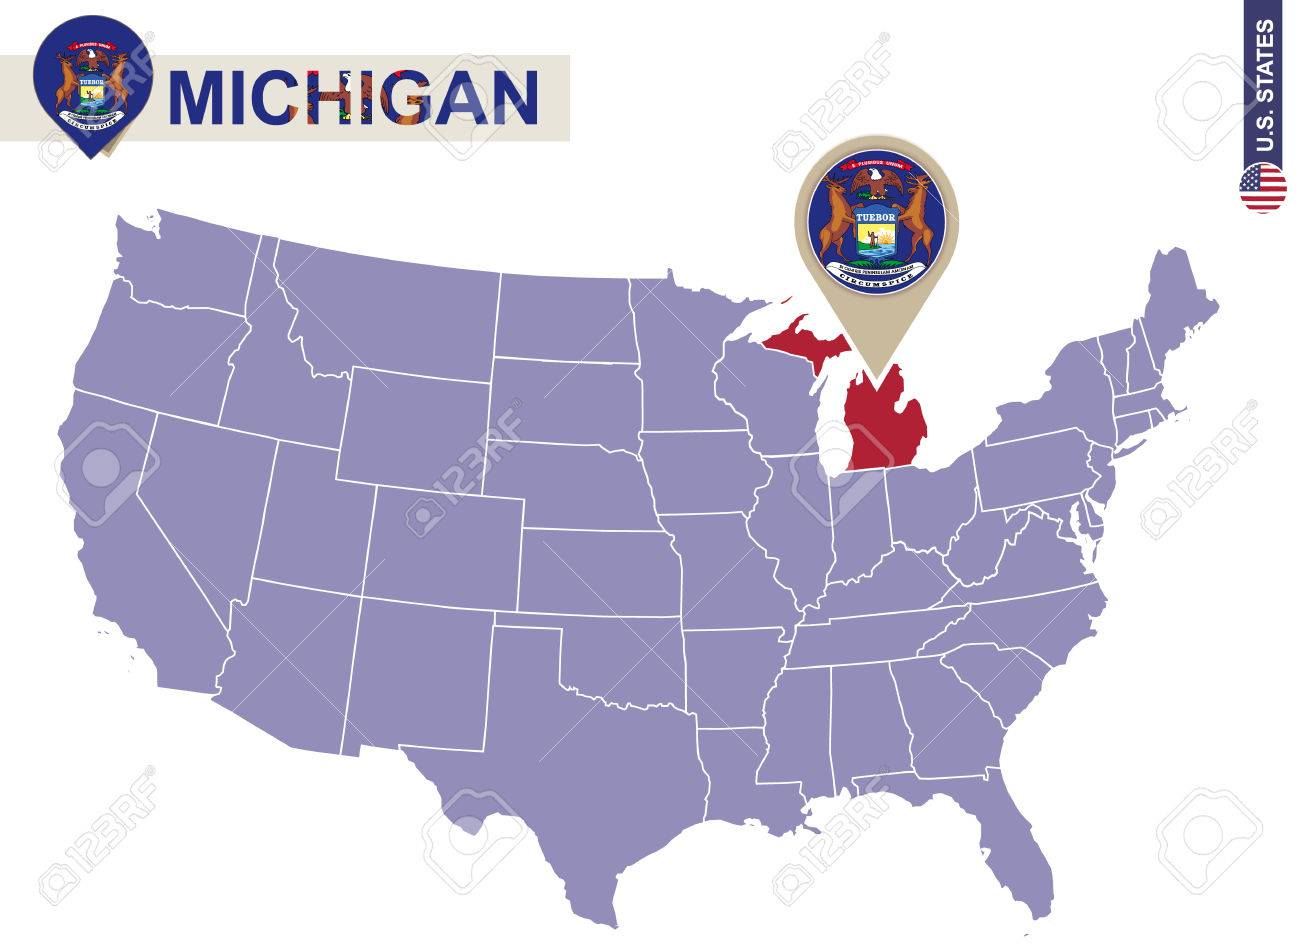 michigan state on usa map michigan flag and map us states stock vector